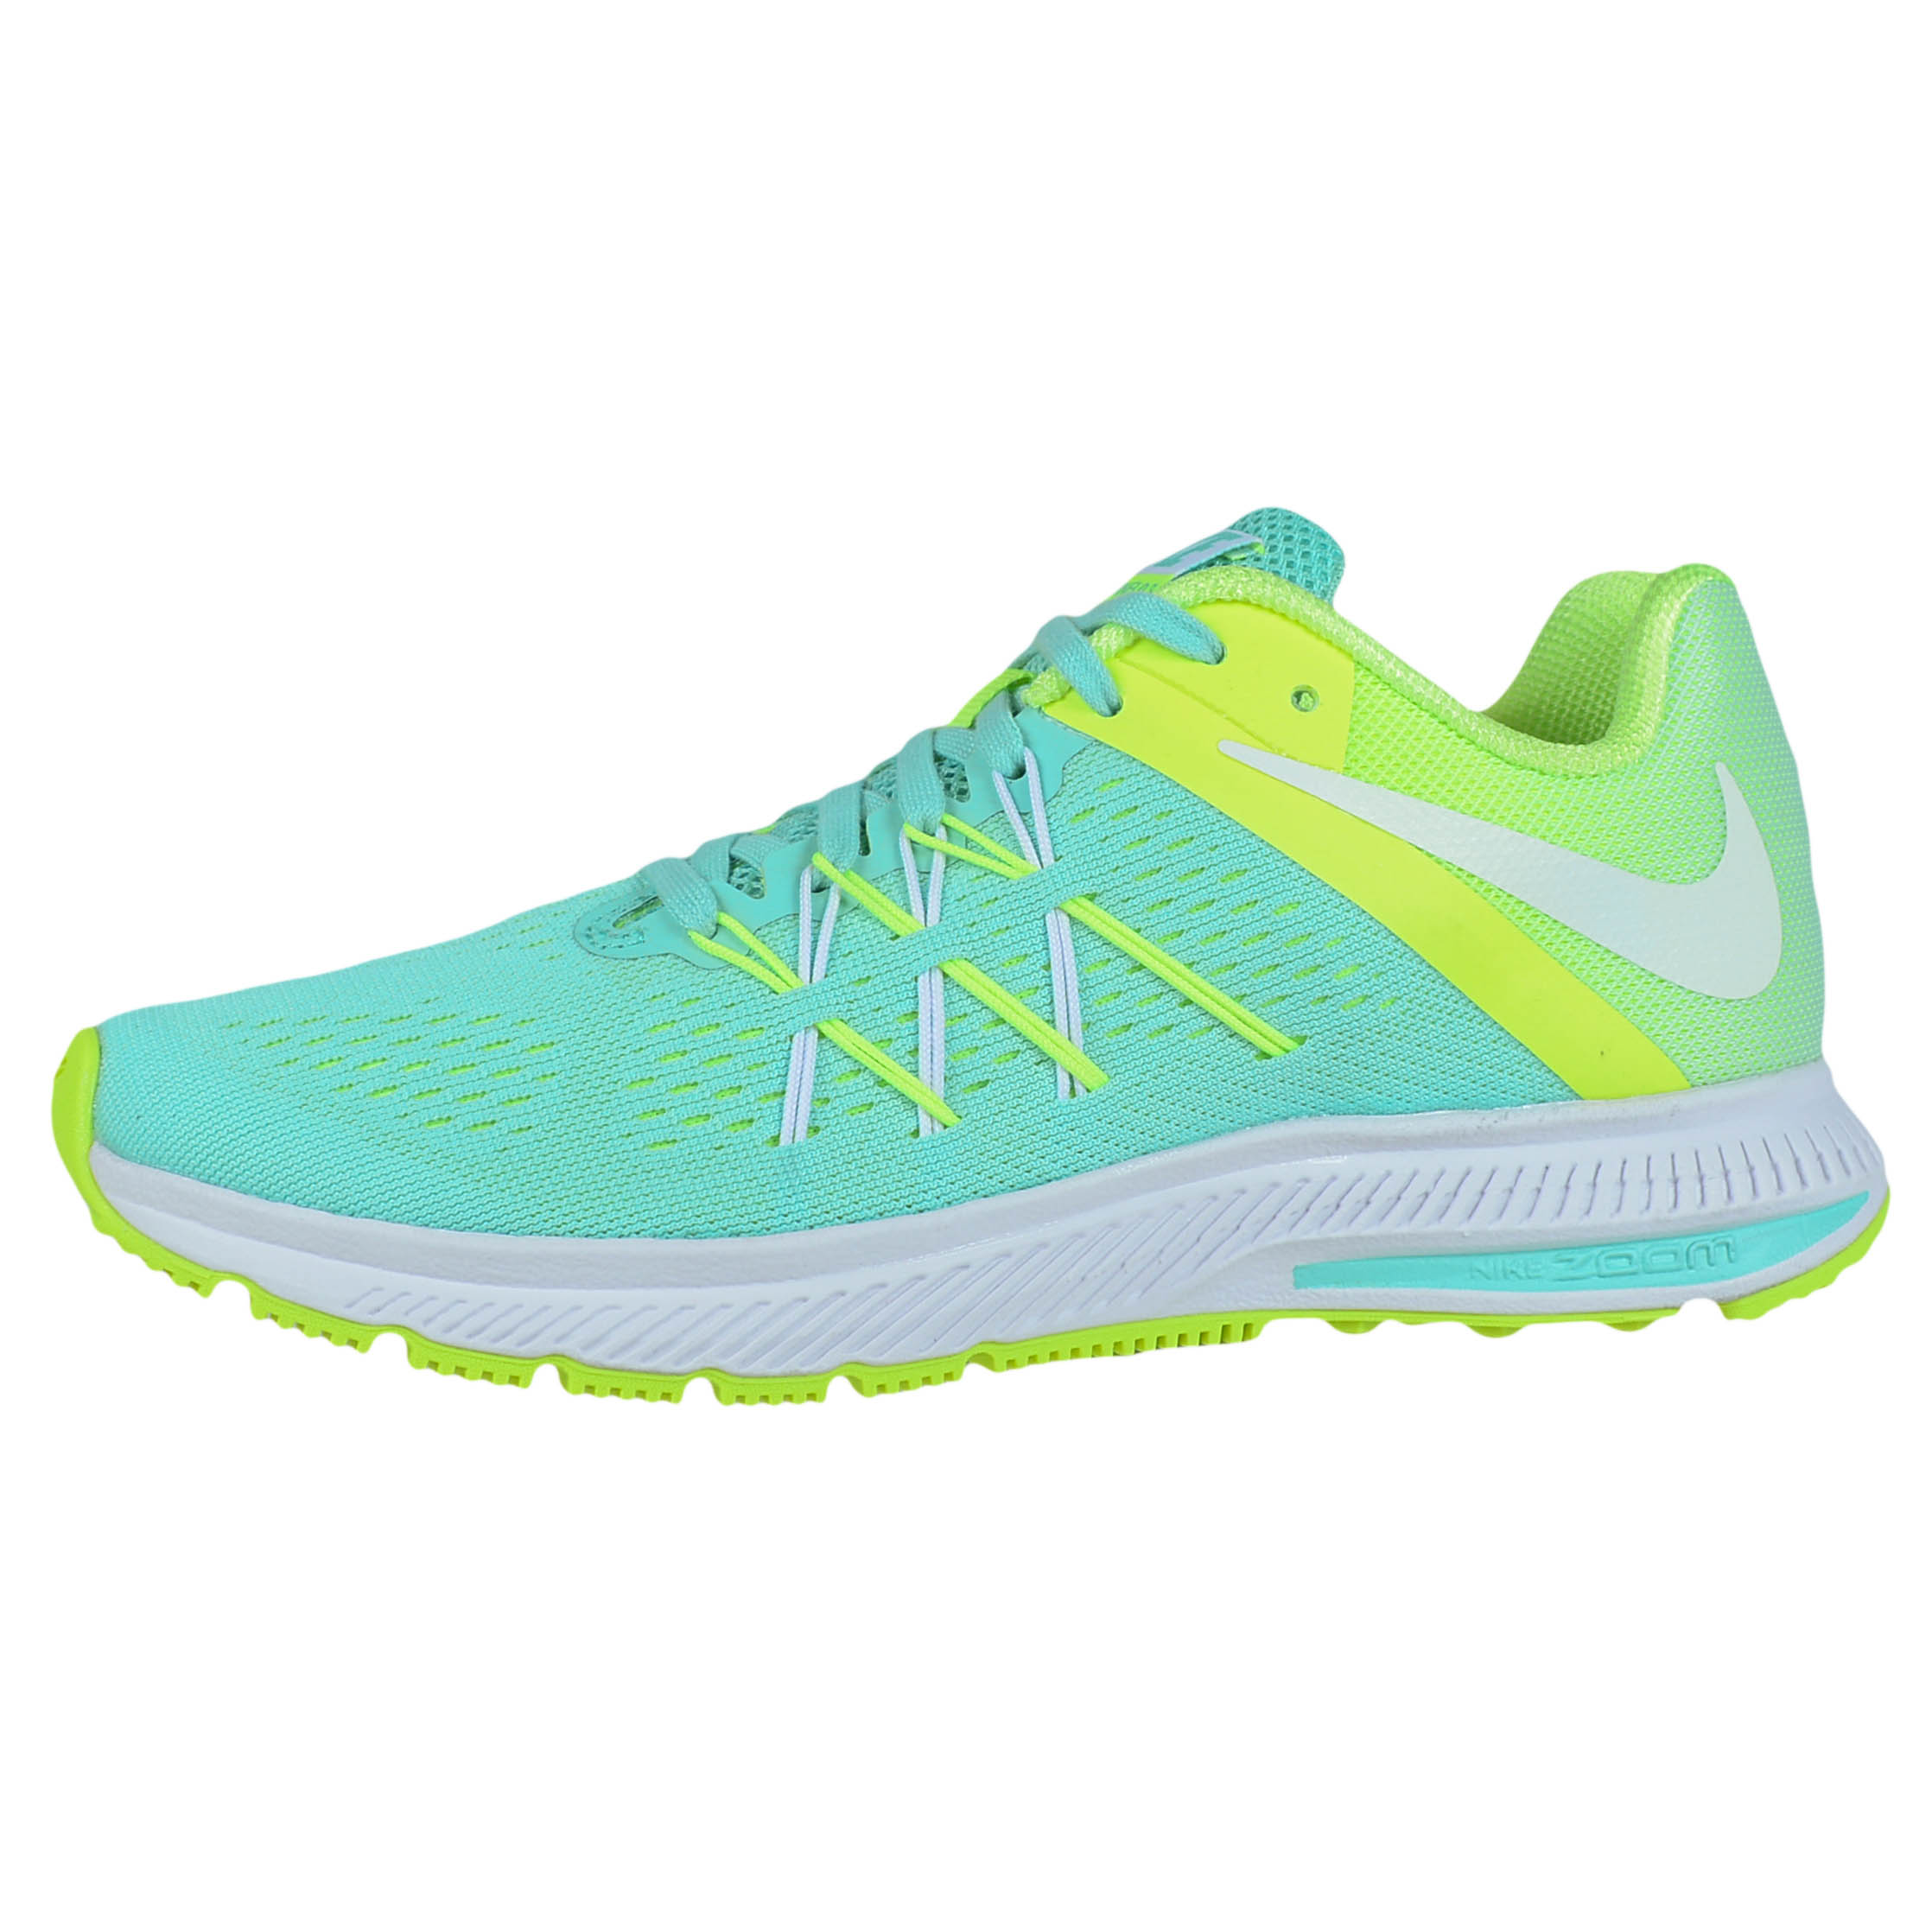 Nike - NIKE WOMENS ZOOM WINFLO 3 RUNNING SHOES HYPER TURQUOISE WHITE VOLT 831562  300 - Walmart.com 15533cb4a